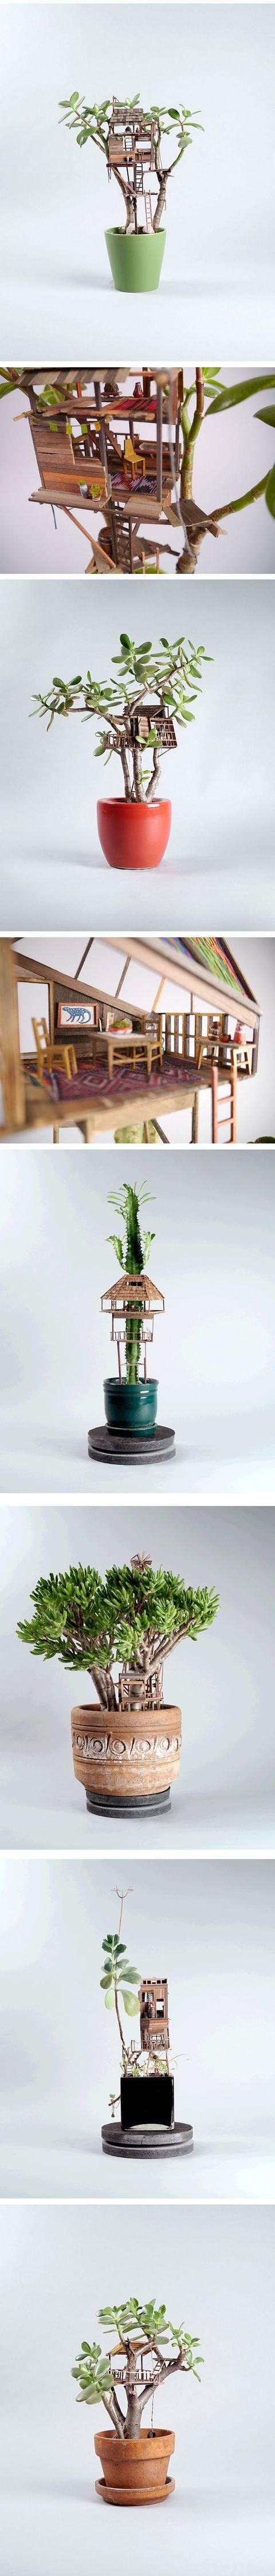 Miniature Tree Houses Make Houseplants Way More Interesting